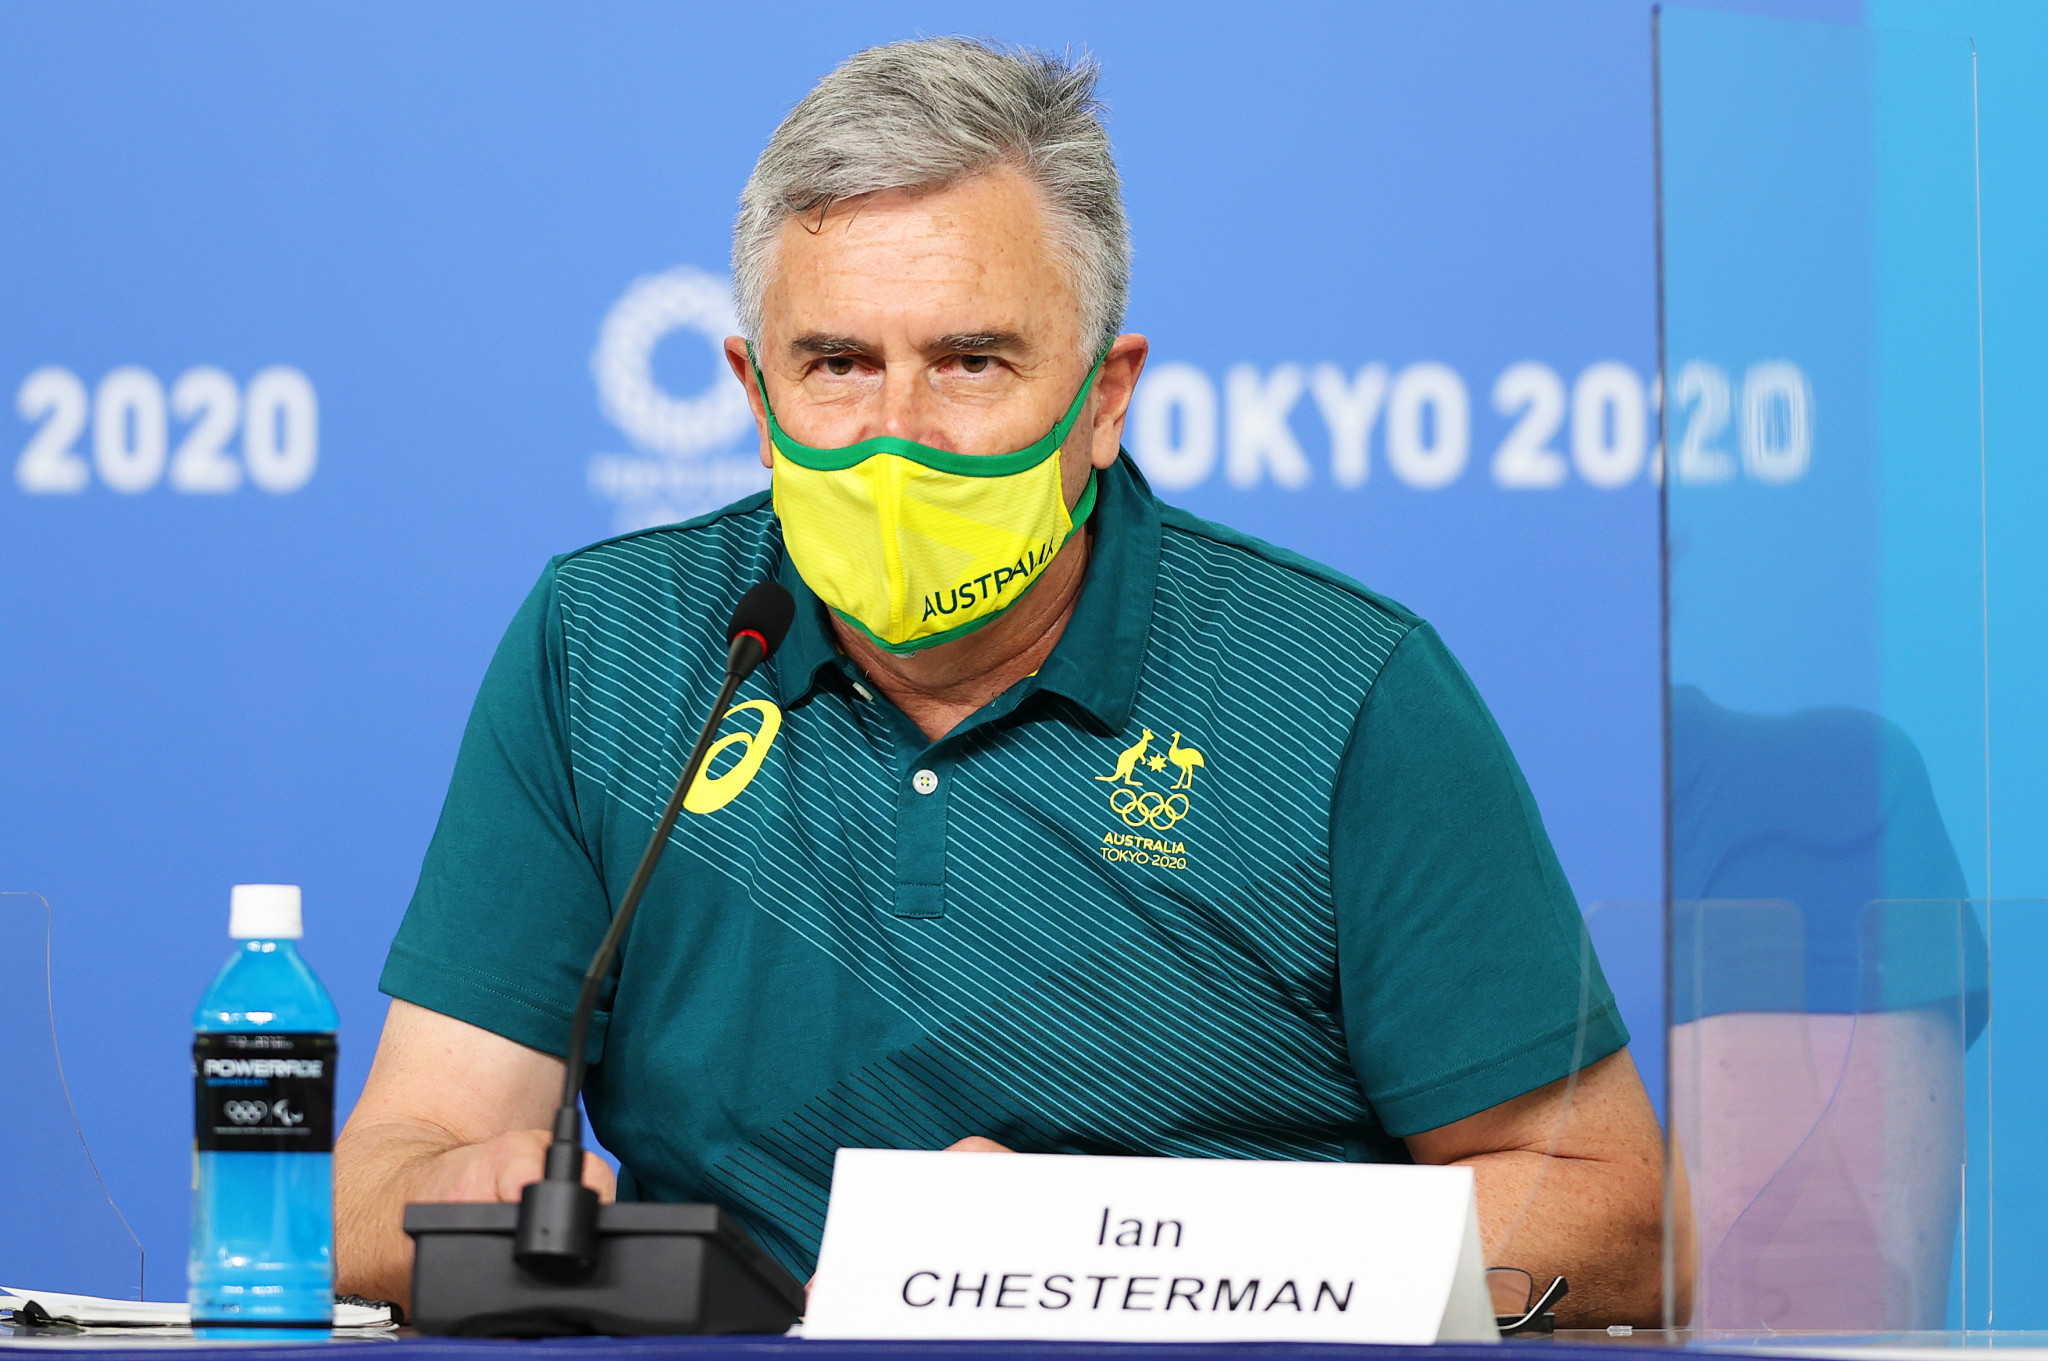 Ian Chesterman, Australia's Chef de Mission for Tokyo 2020, said that some athletes had damaged their rooms at the Olympic Village ©Getty Images